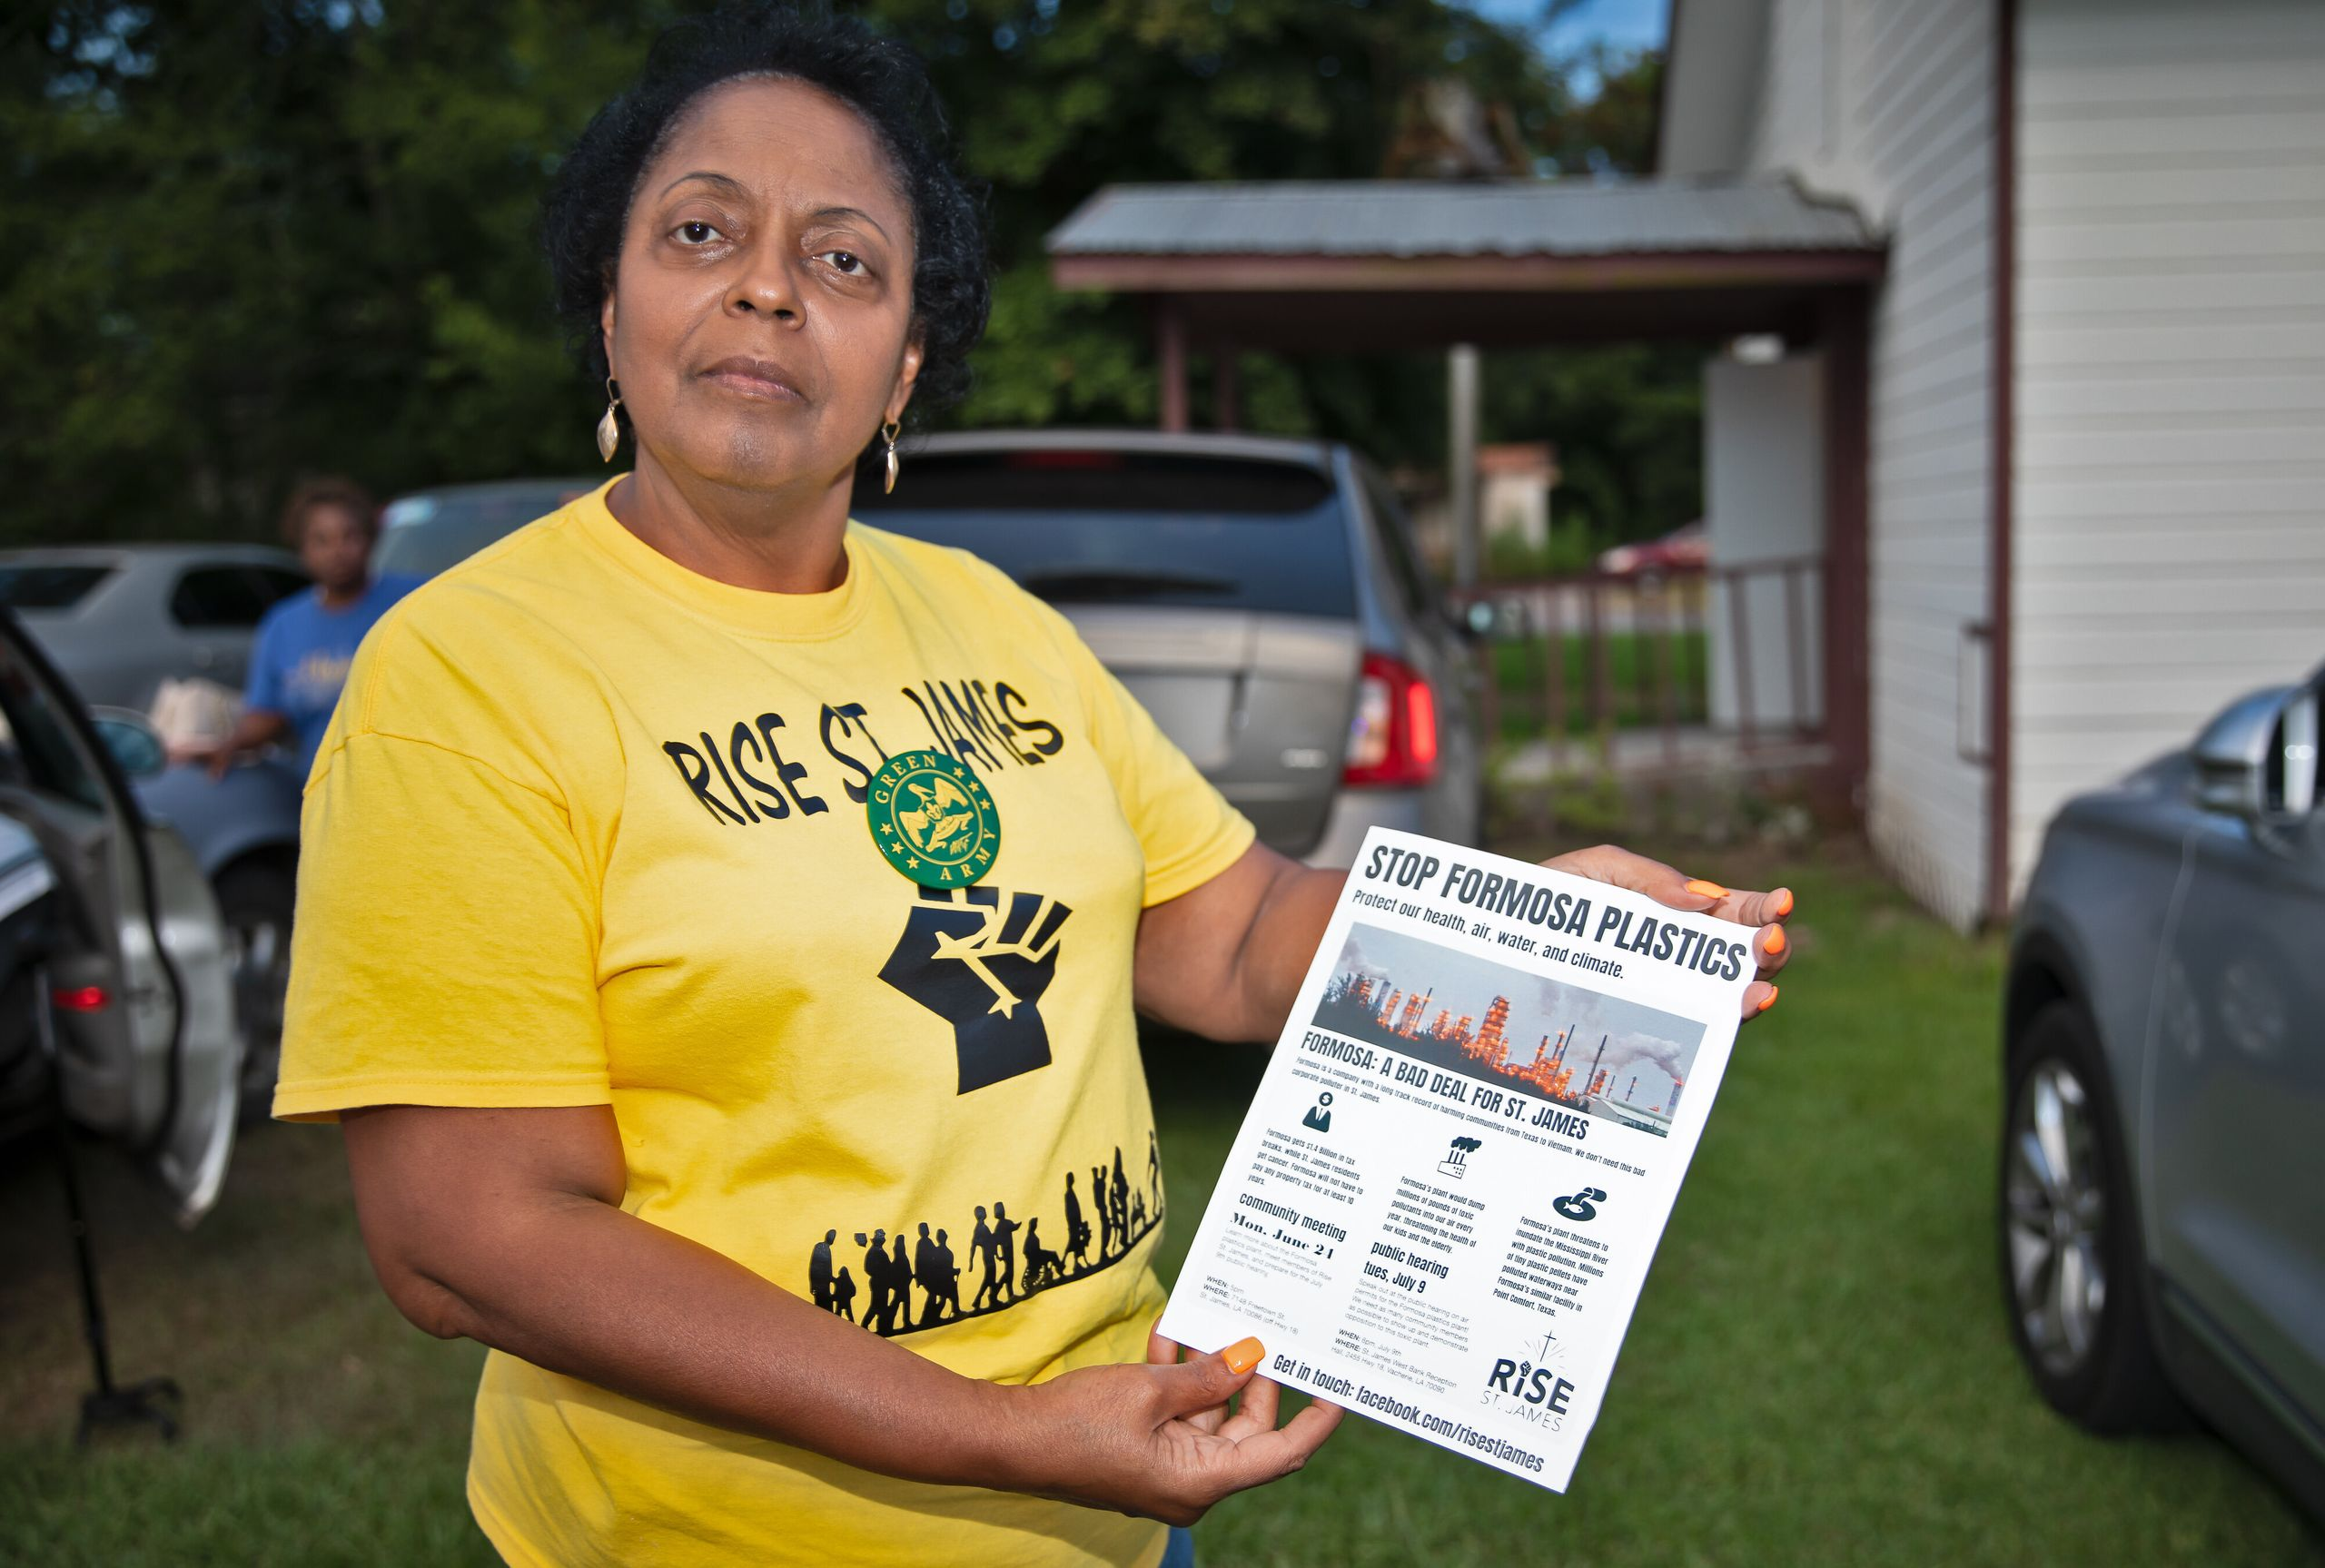 Sharon Lavinge founder of RISE St. James in front of the Mt. Triumph Baptist Church with a flyer about the proposed Formosa plant